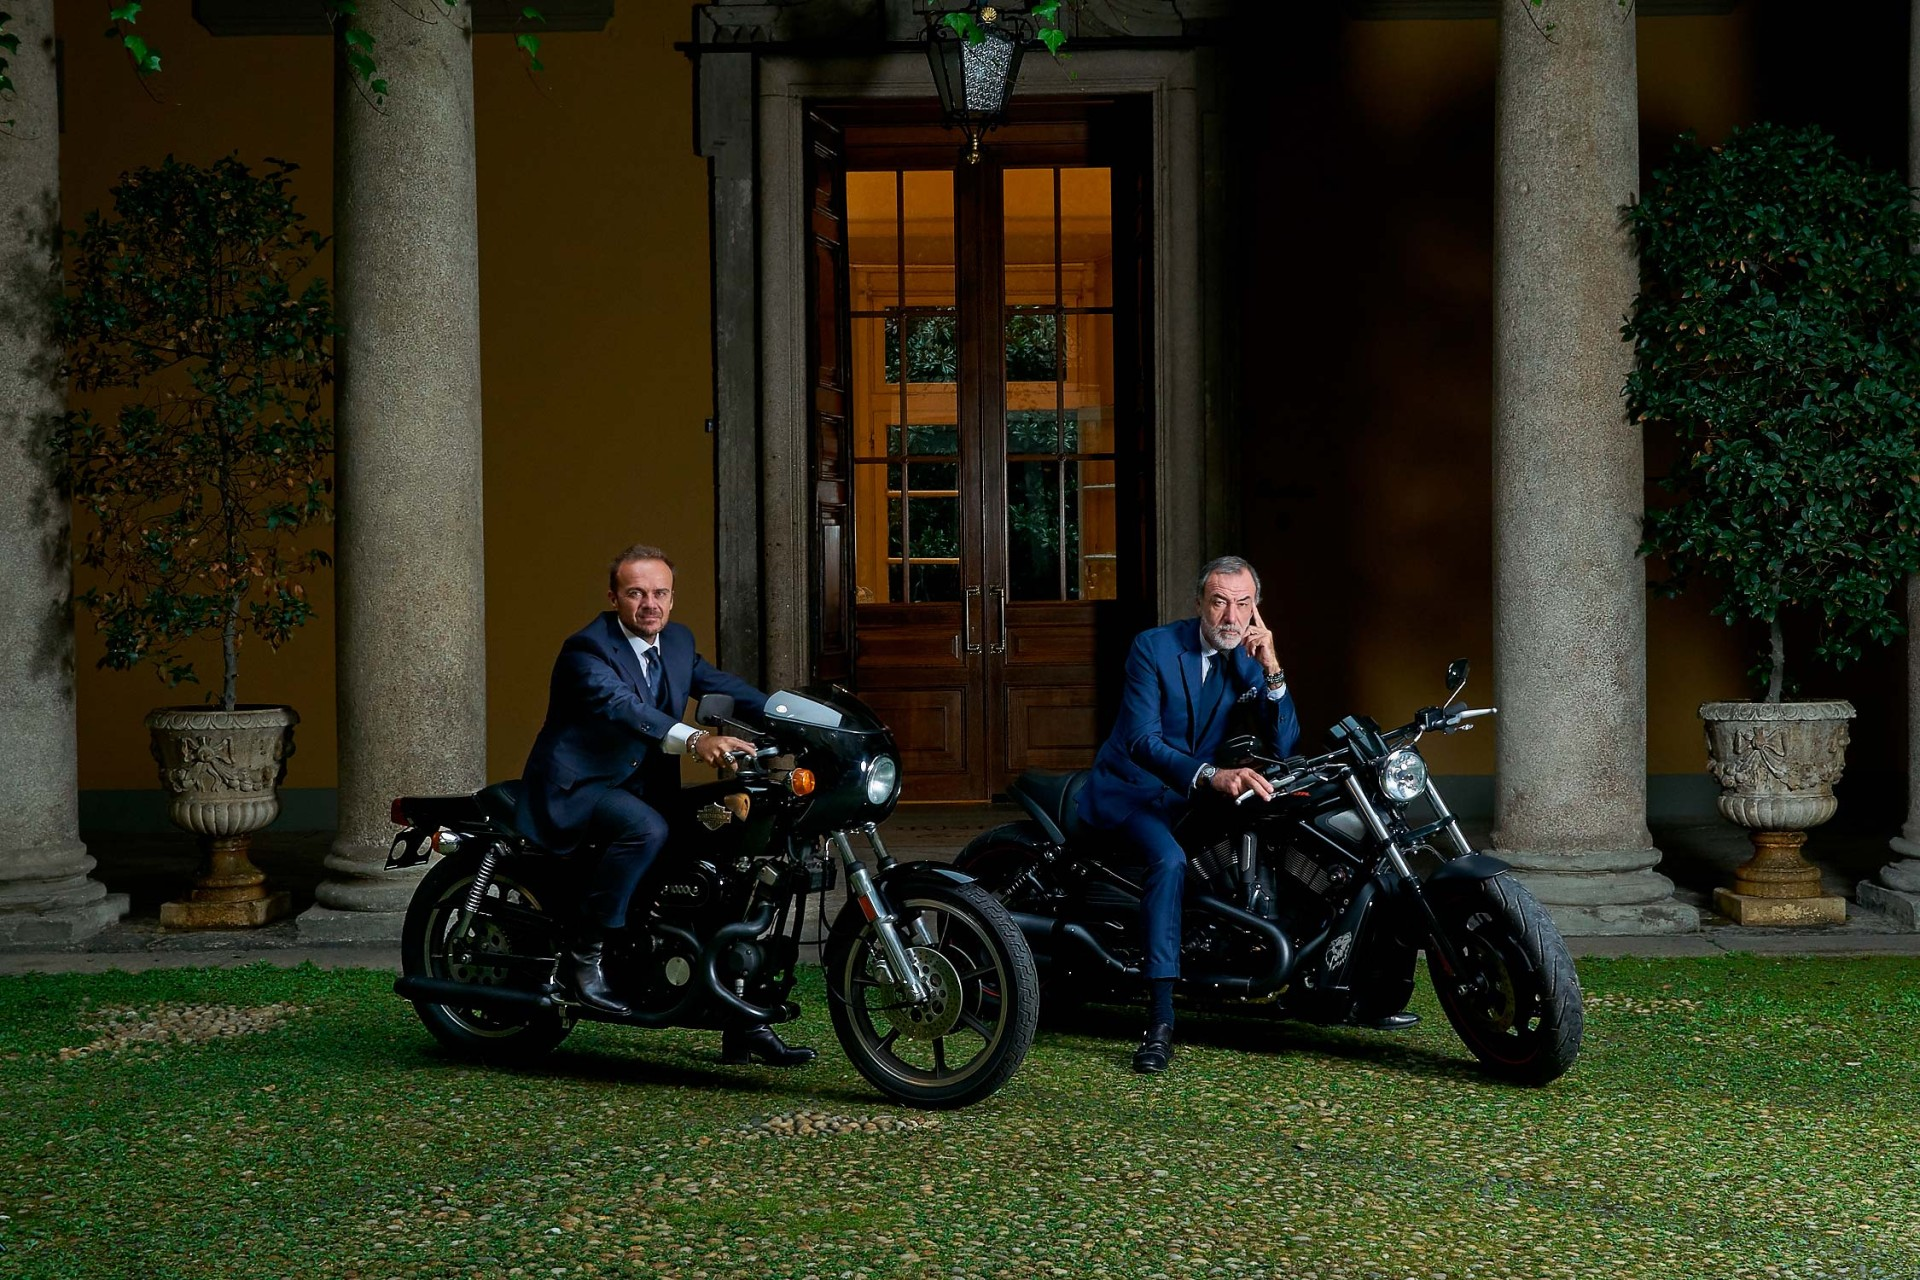 GENTLEMAN Bikers - Sempre in sella, Milan, 2016